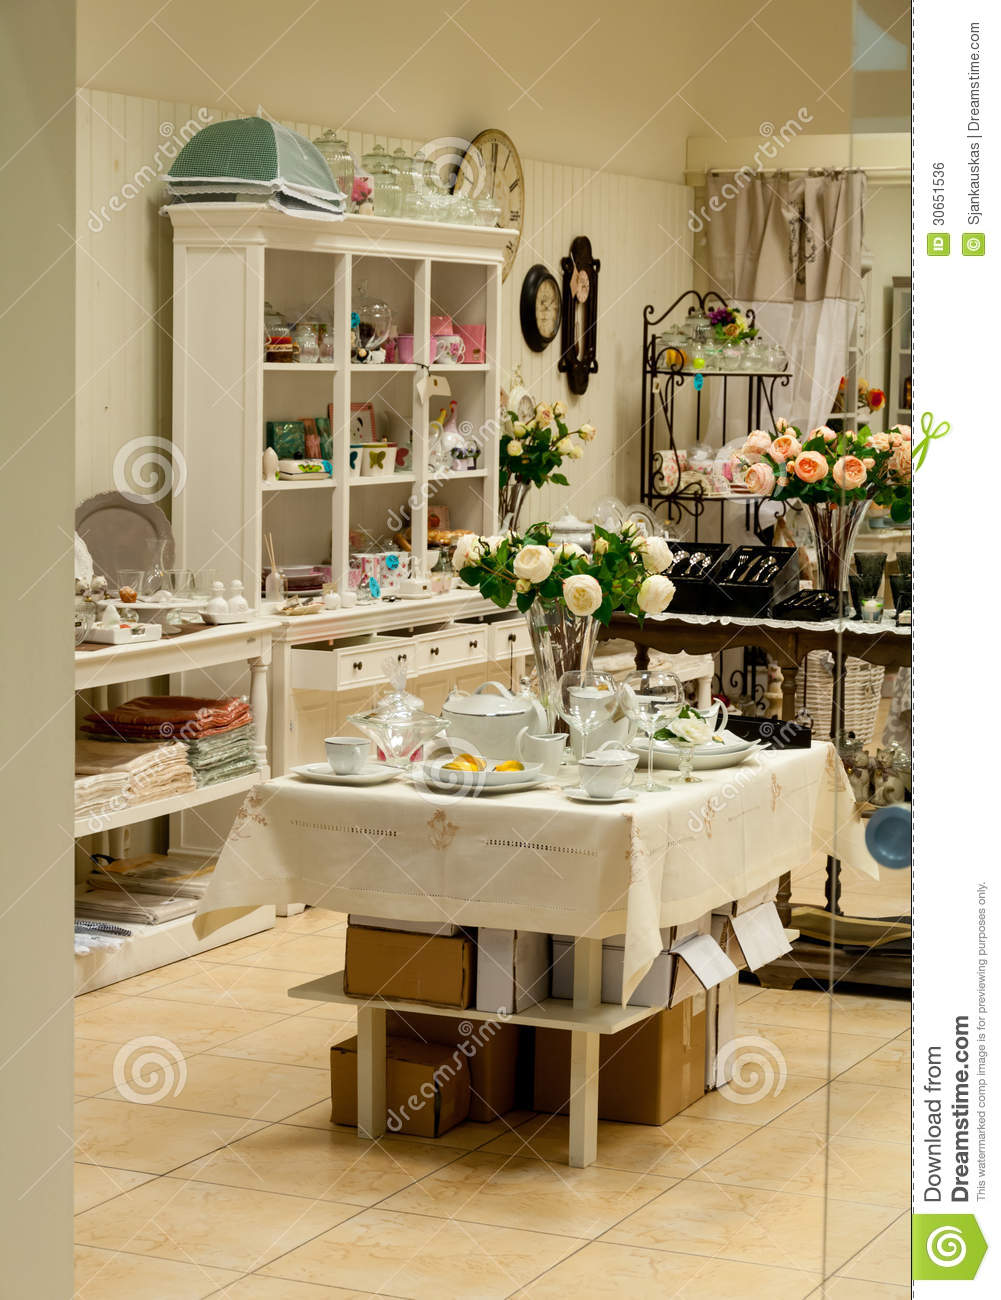 Home decor and dishes shop royalty free stock image for Accessories for home decoration